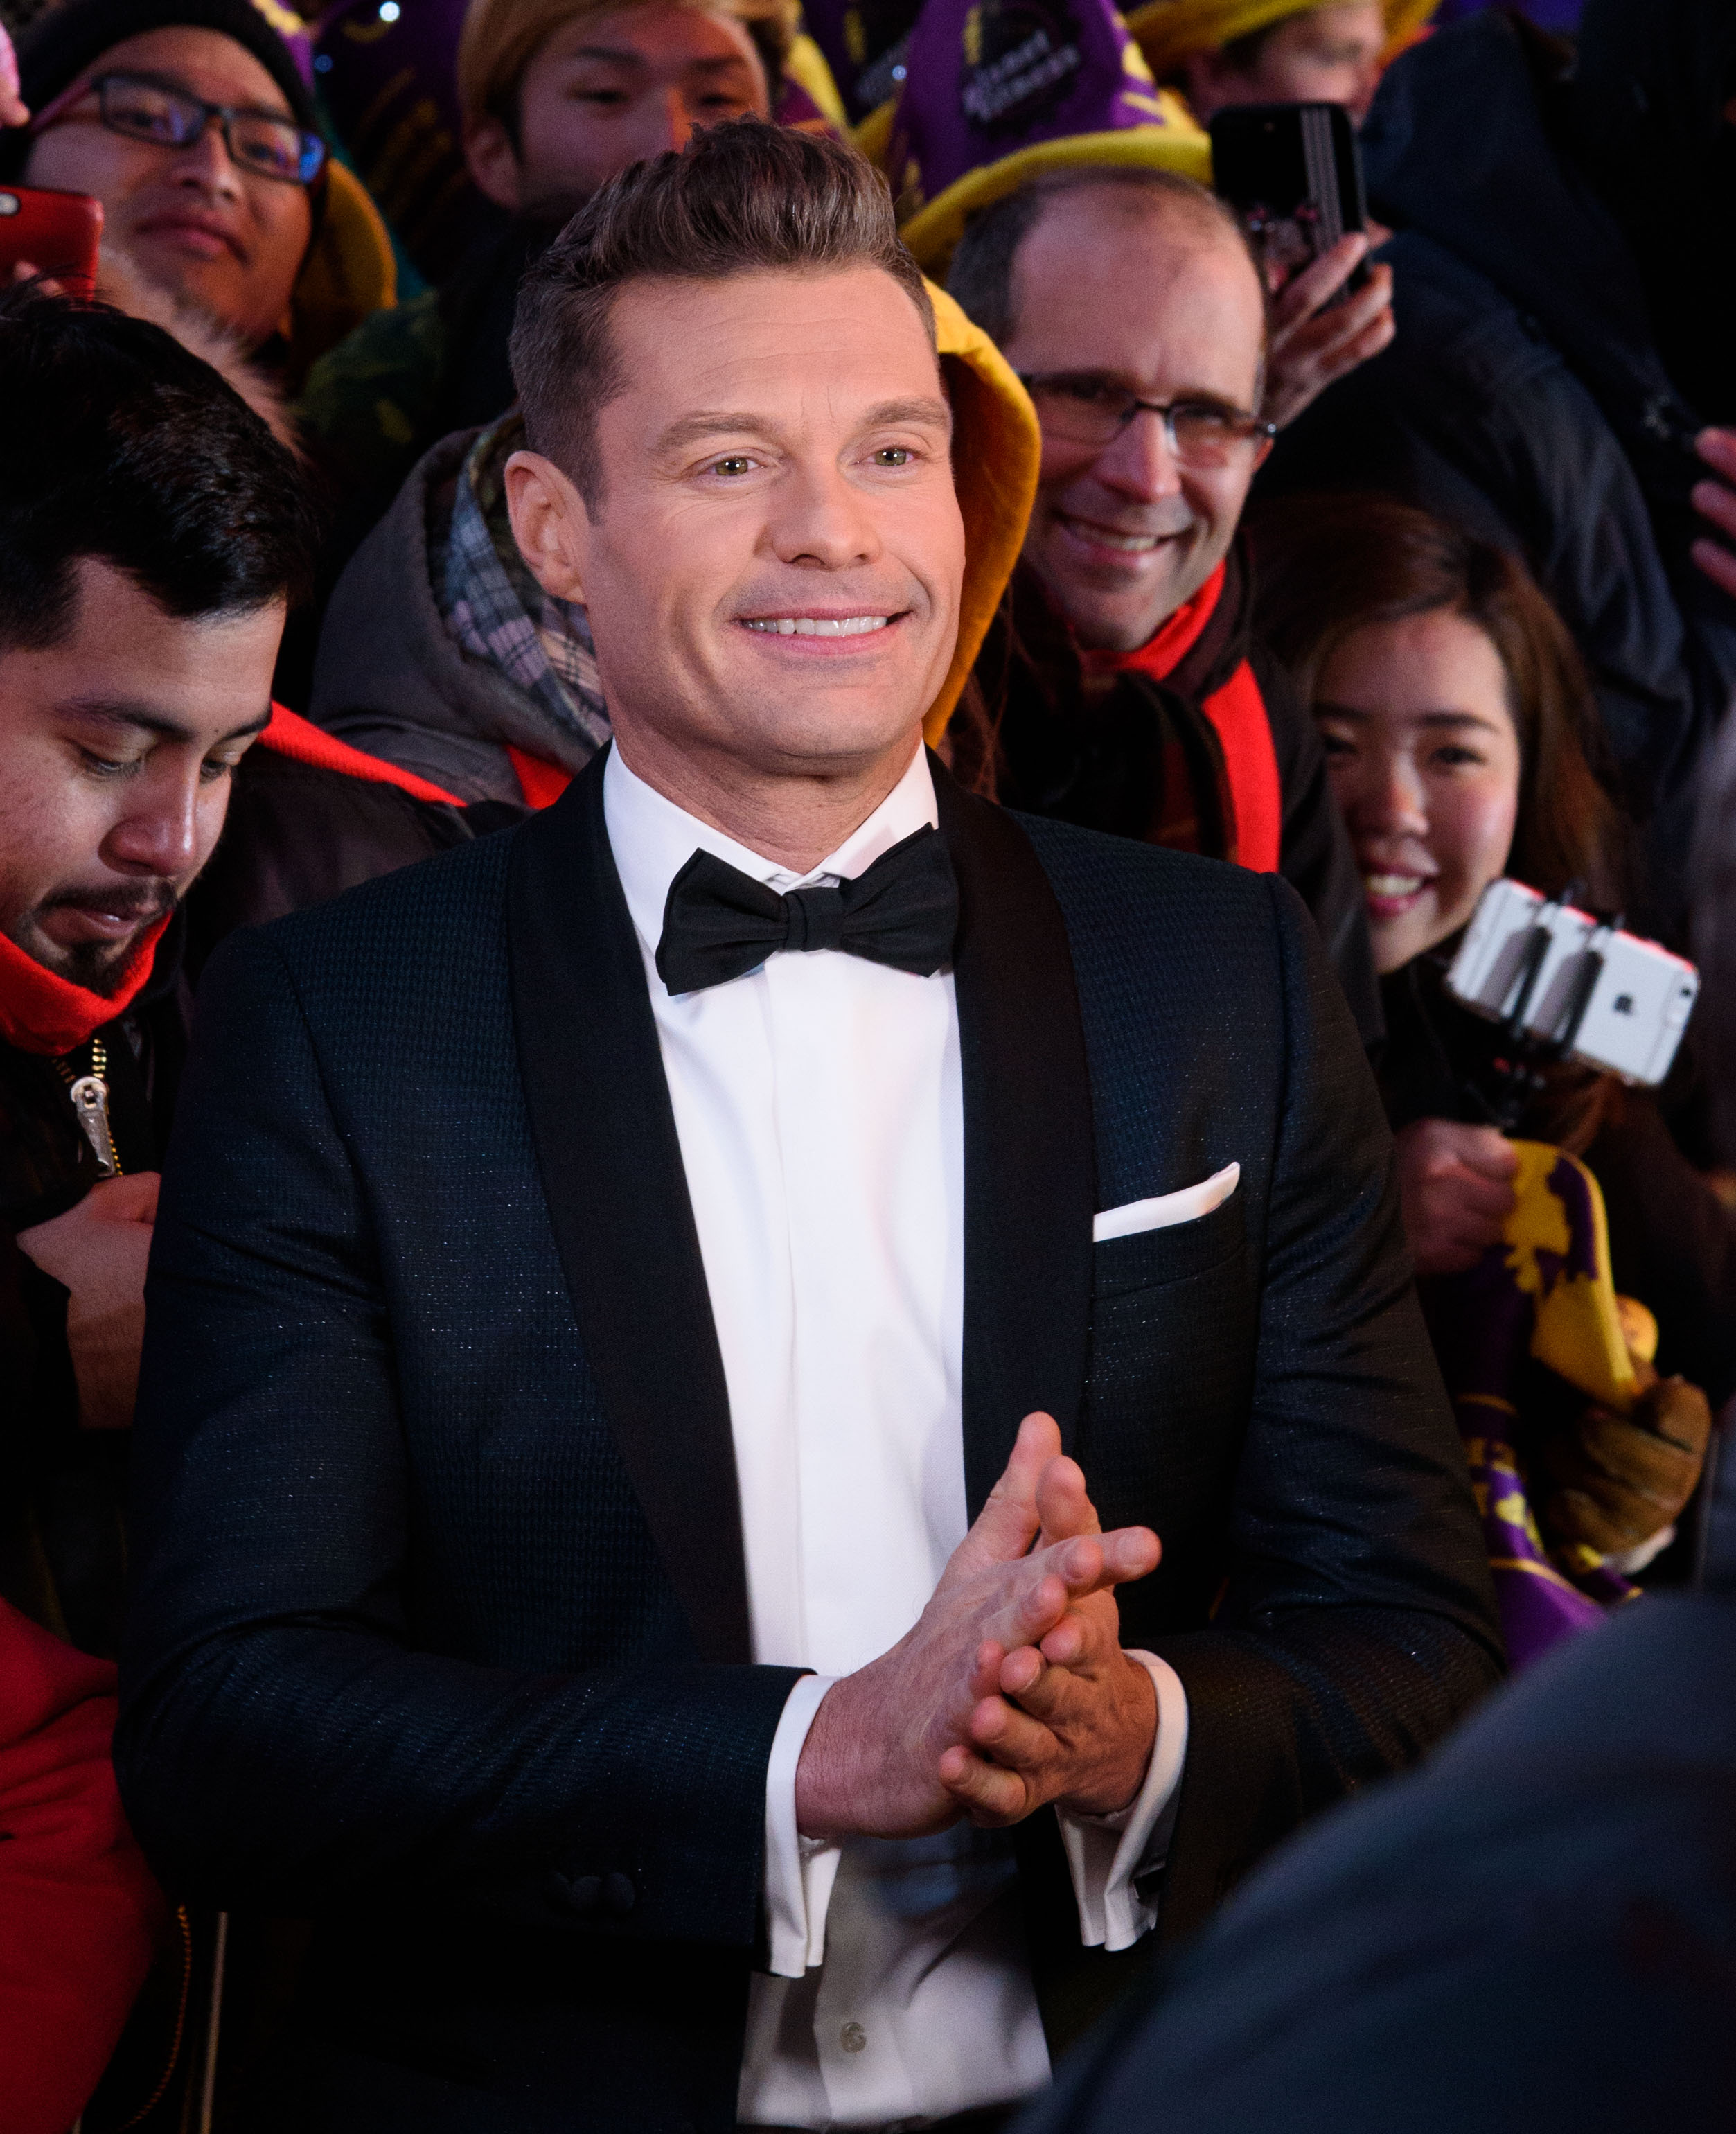 New Year's Eve celebrations in Times Square, New York                                    Featuring: Ryan Seacrest                  Where: New York, New York, United States                  When: 31 Dec 2016                  Credit: WENN.com